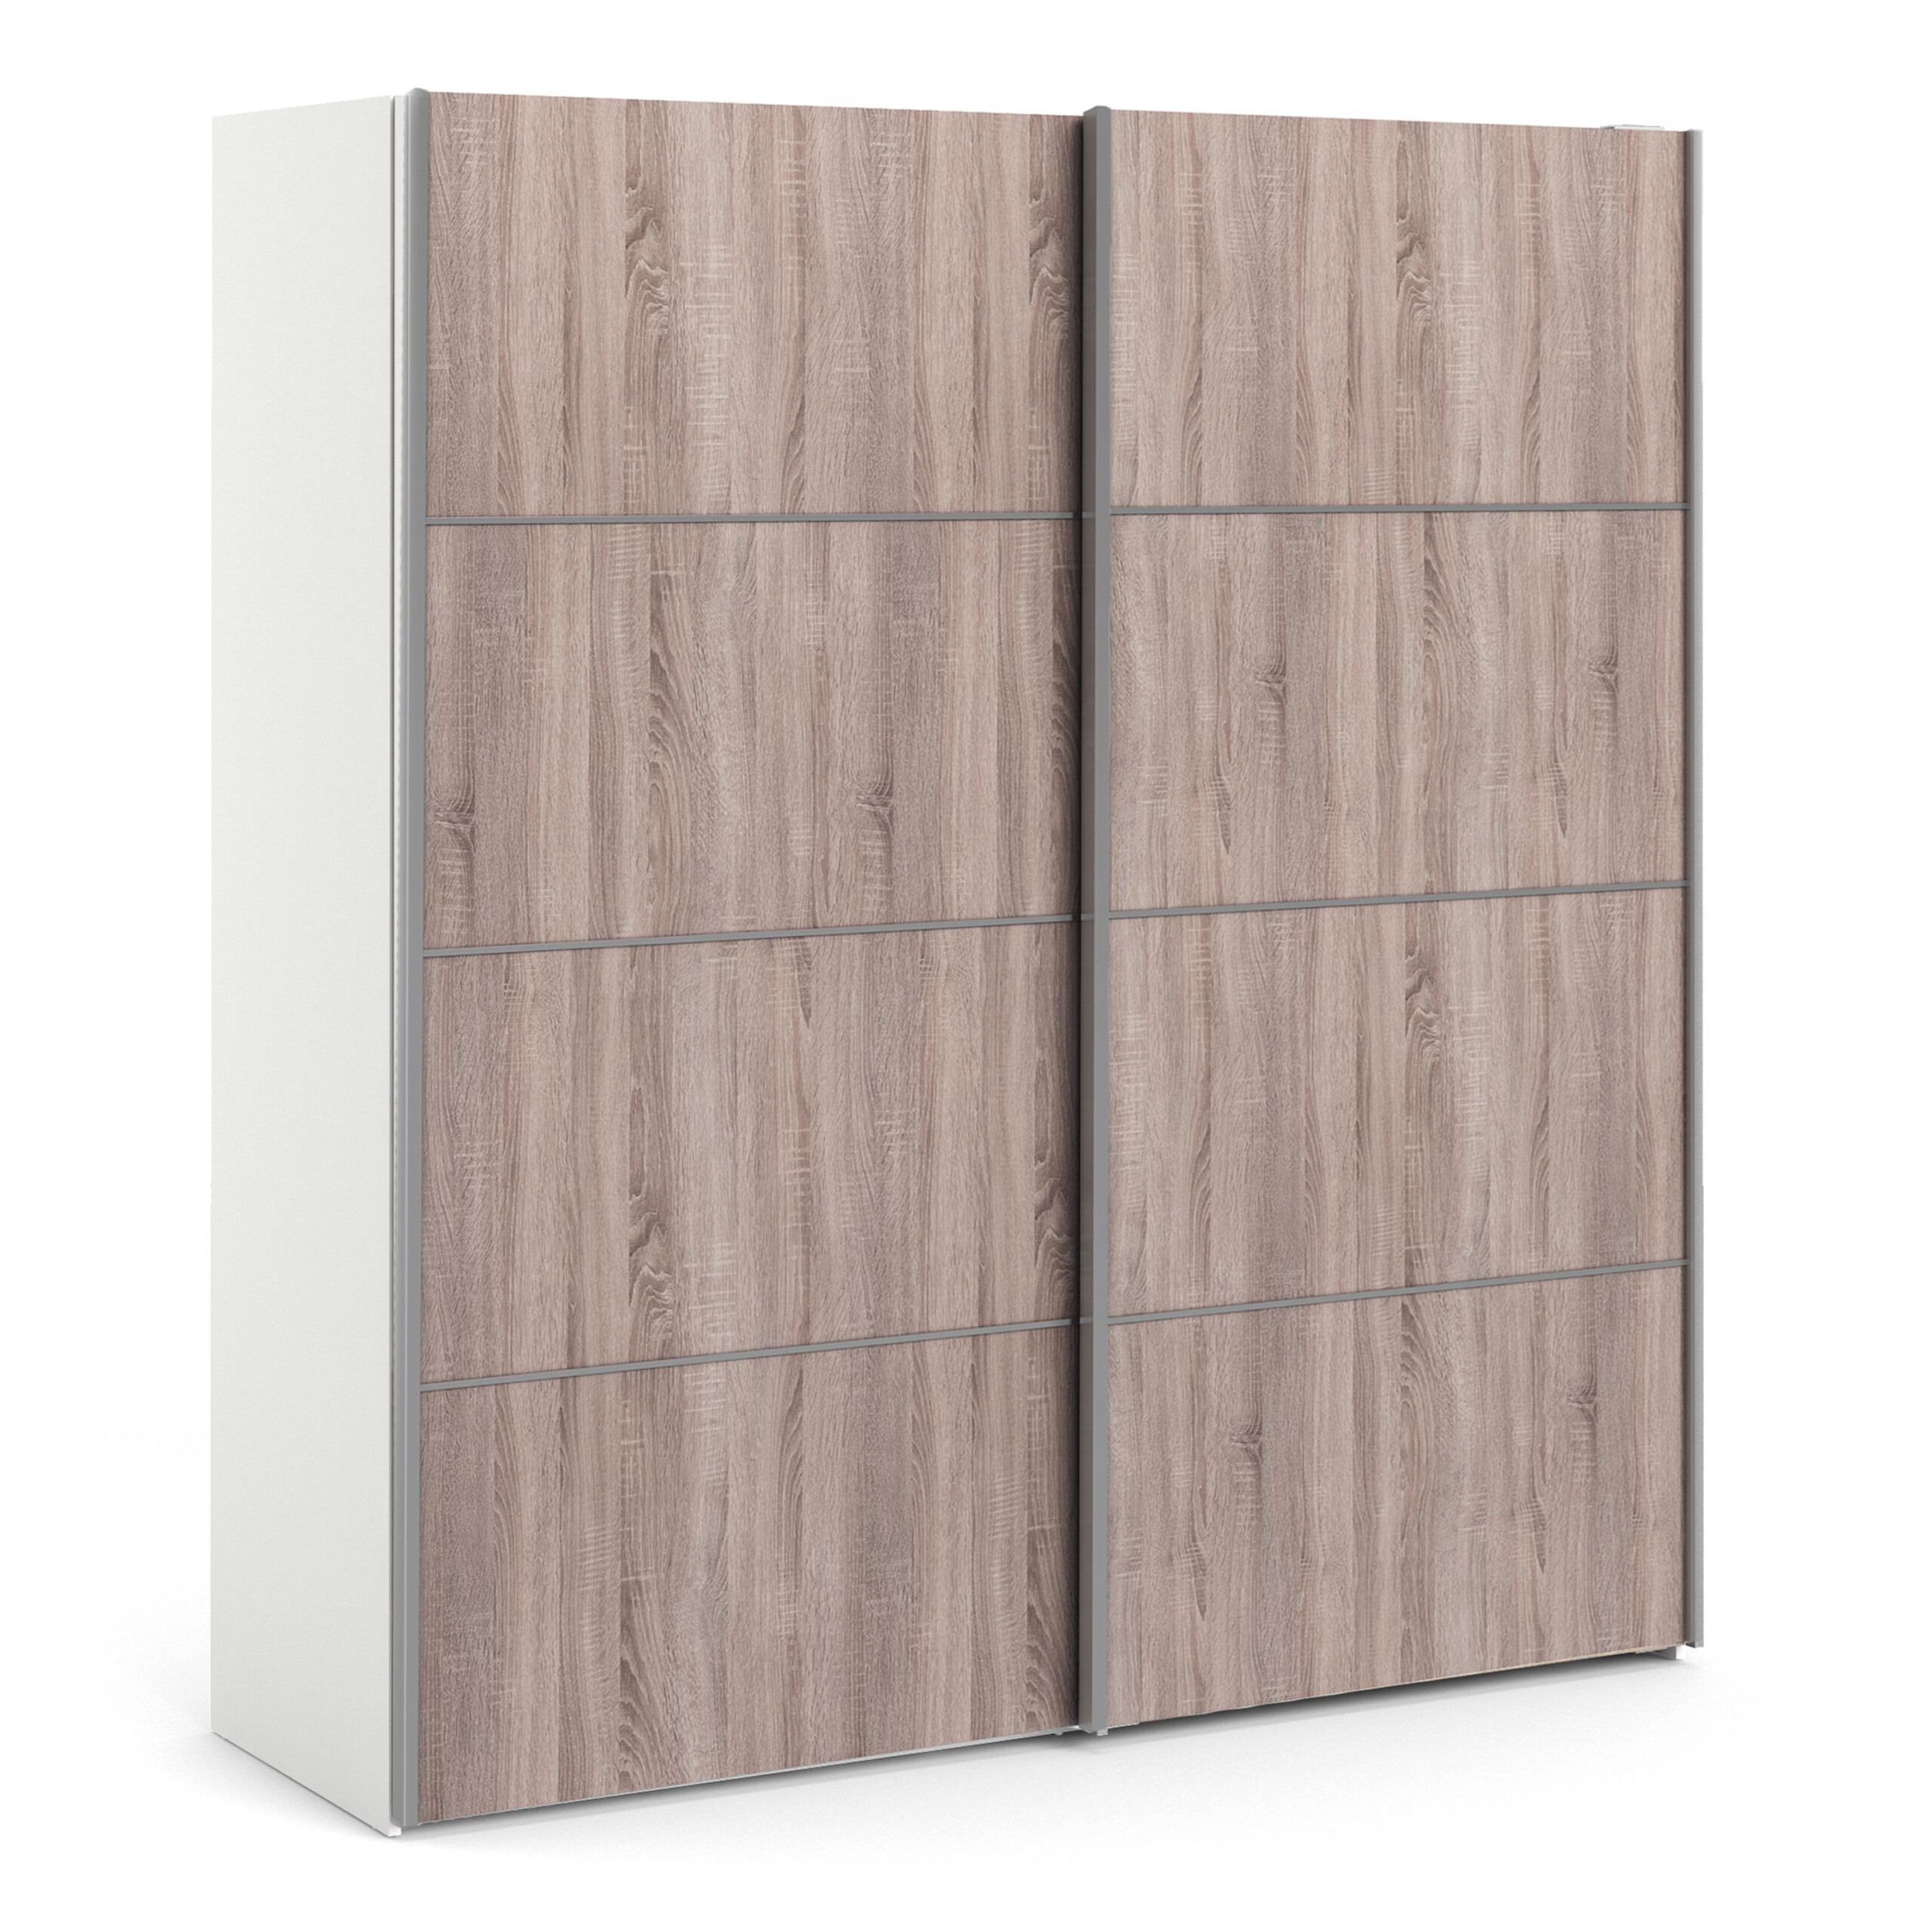 Phillipe Sliding Wardrobe 180cm in White with Truffle Oak Doors with 2 Shelves